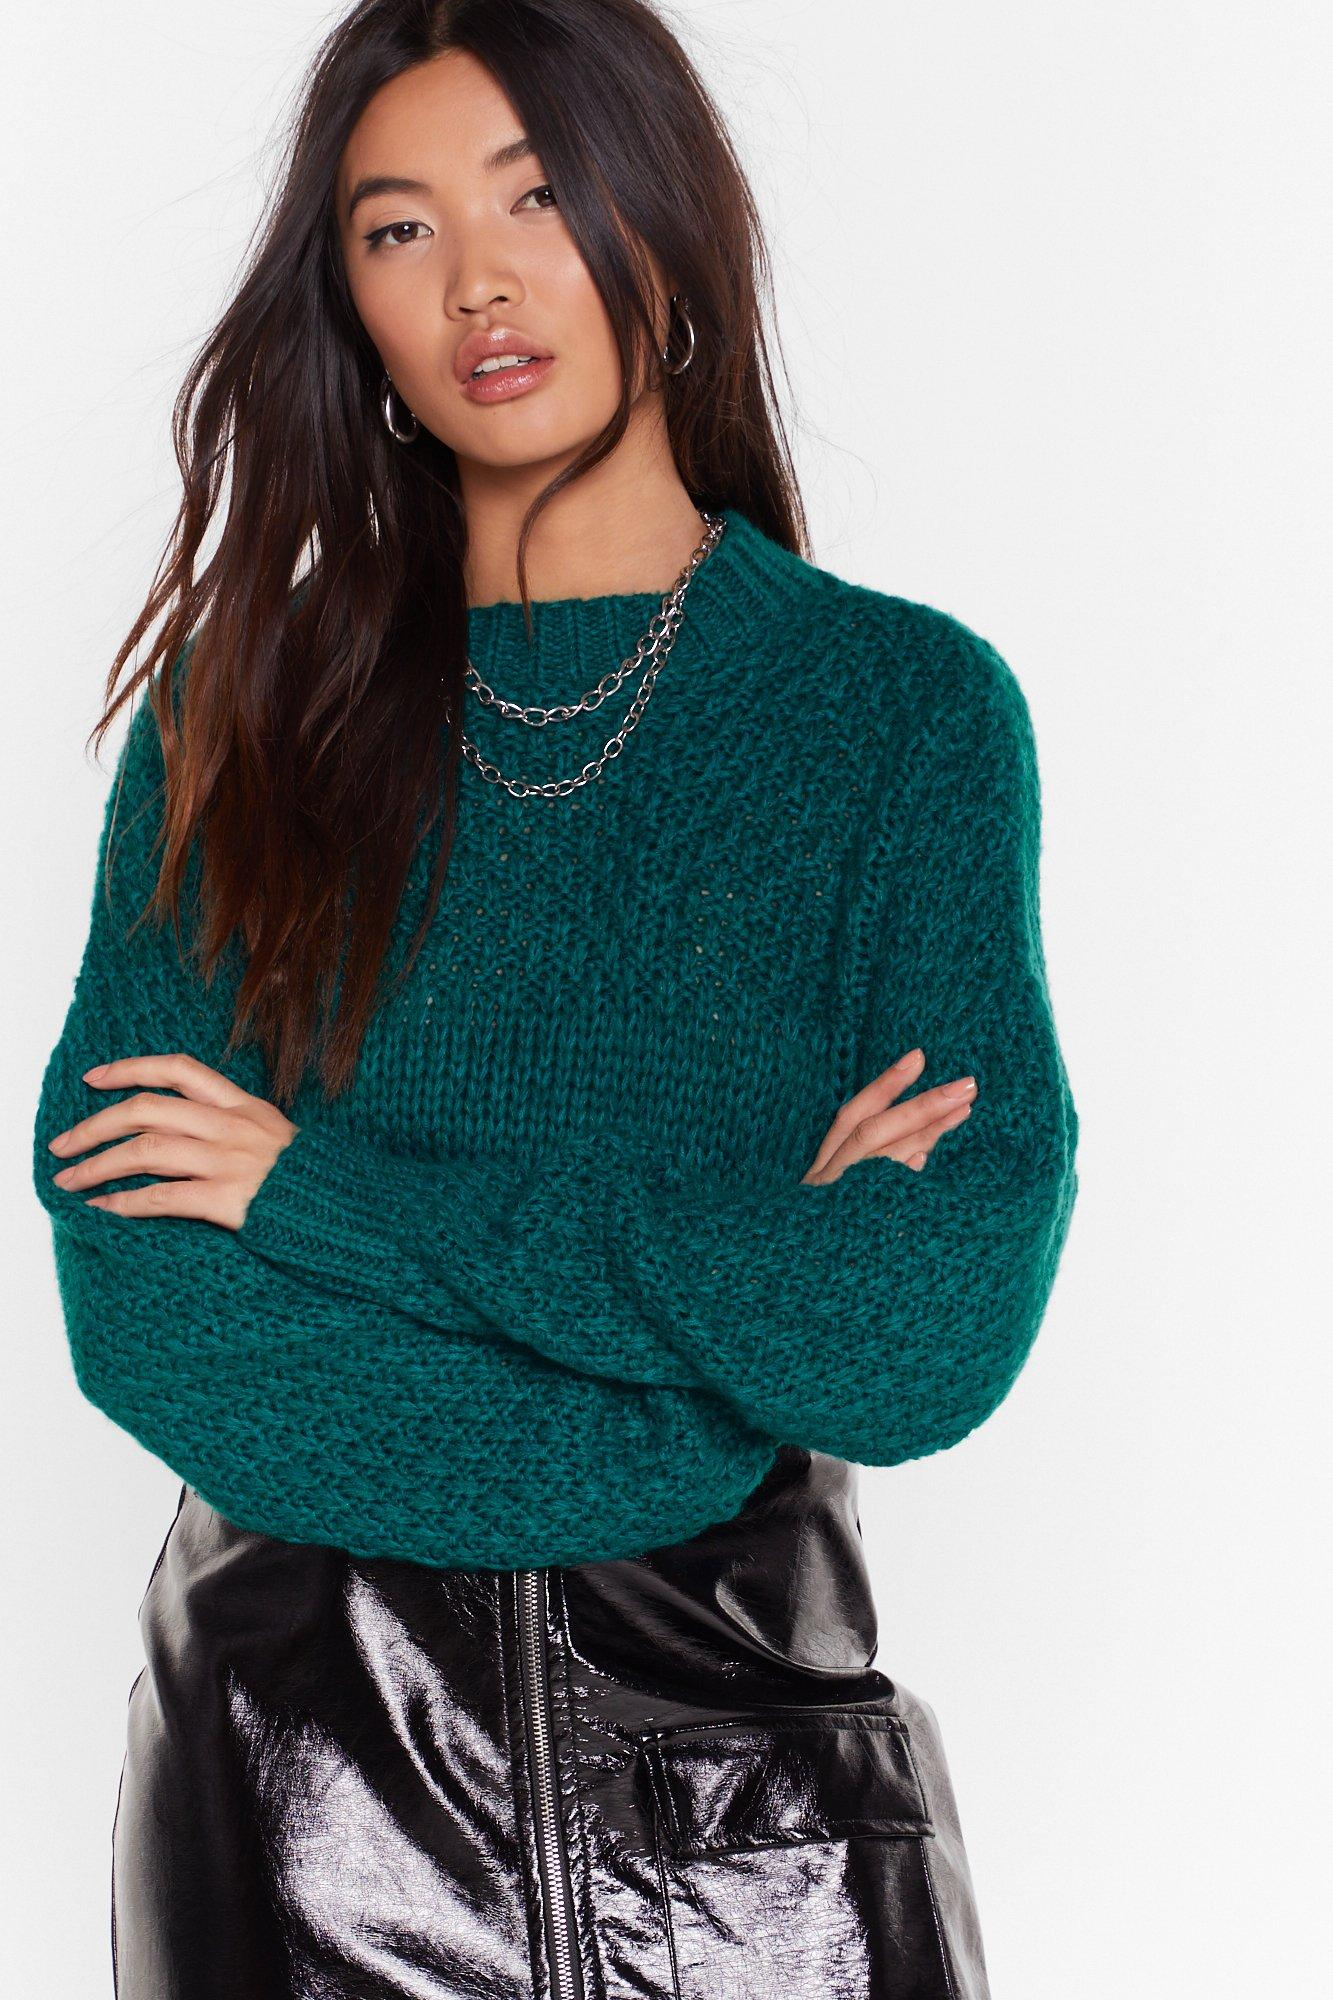 Image of Have Knit All Crew Neck Sweater